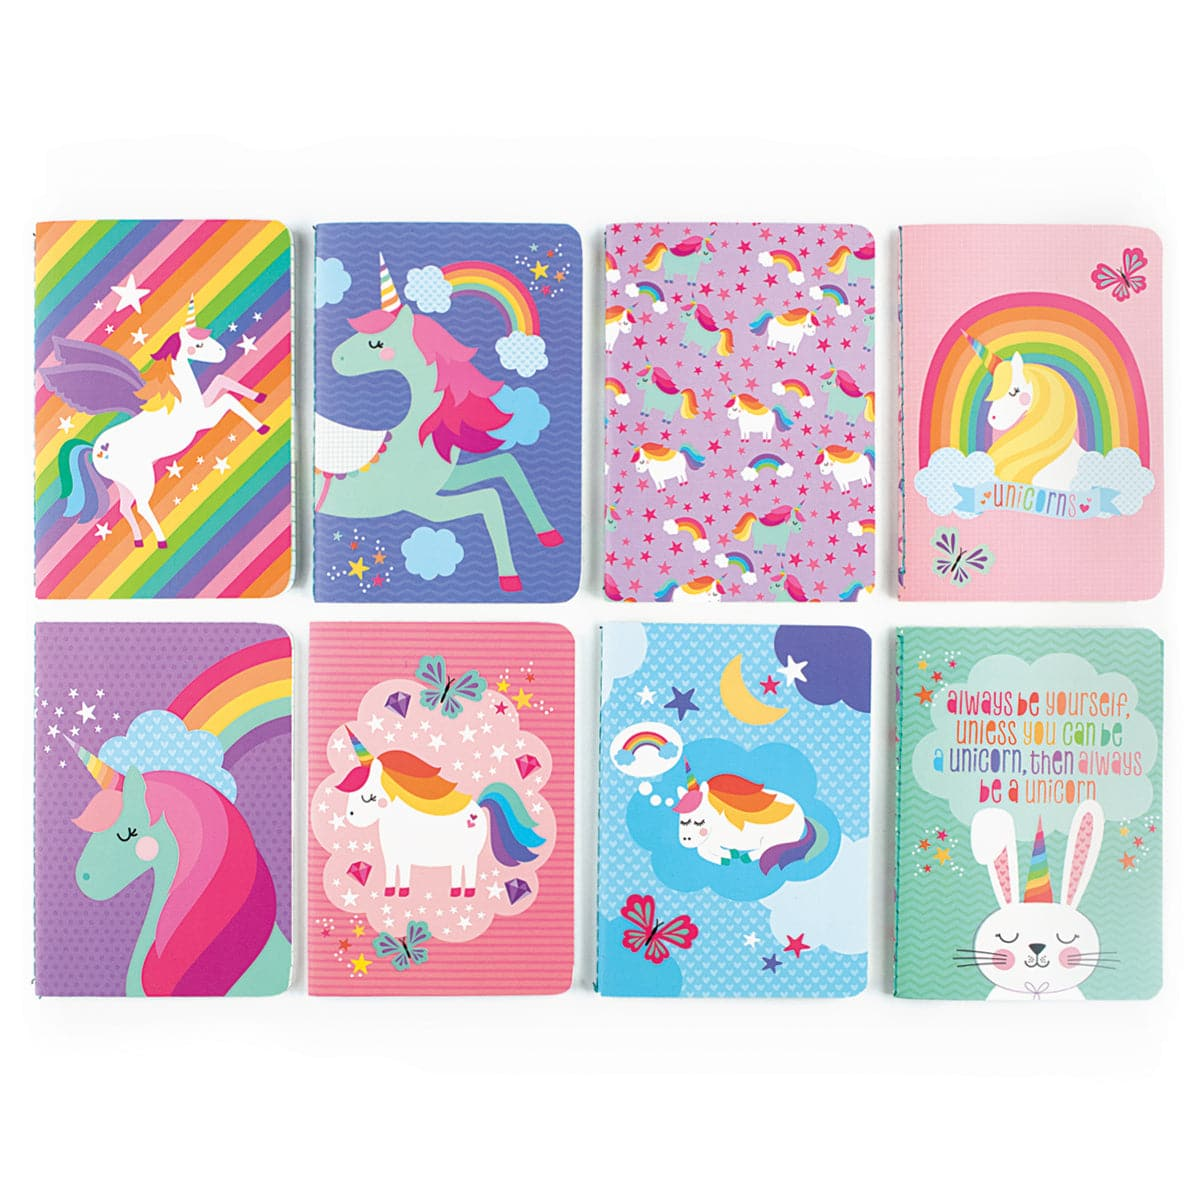 Pocket Pals Journals - Unique Unicorns Set of 8